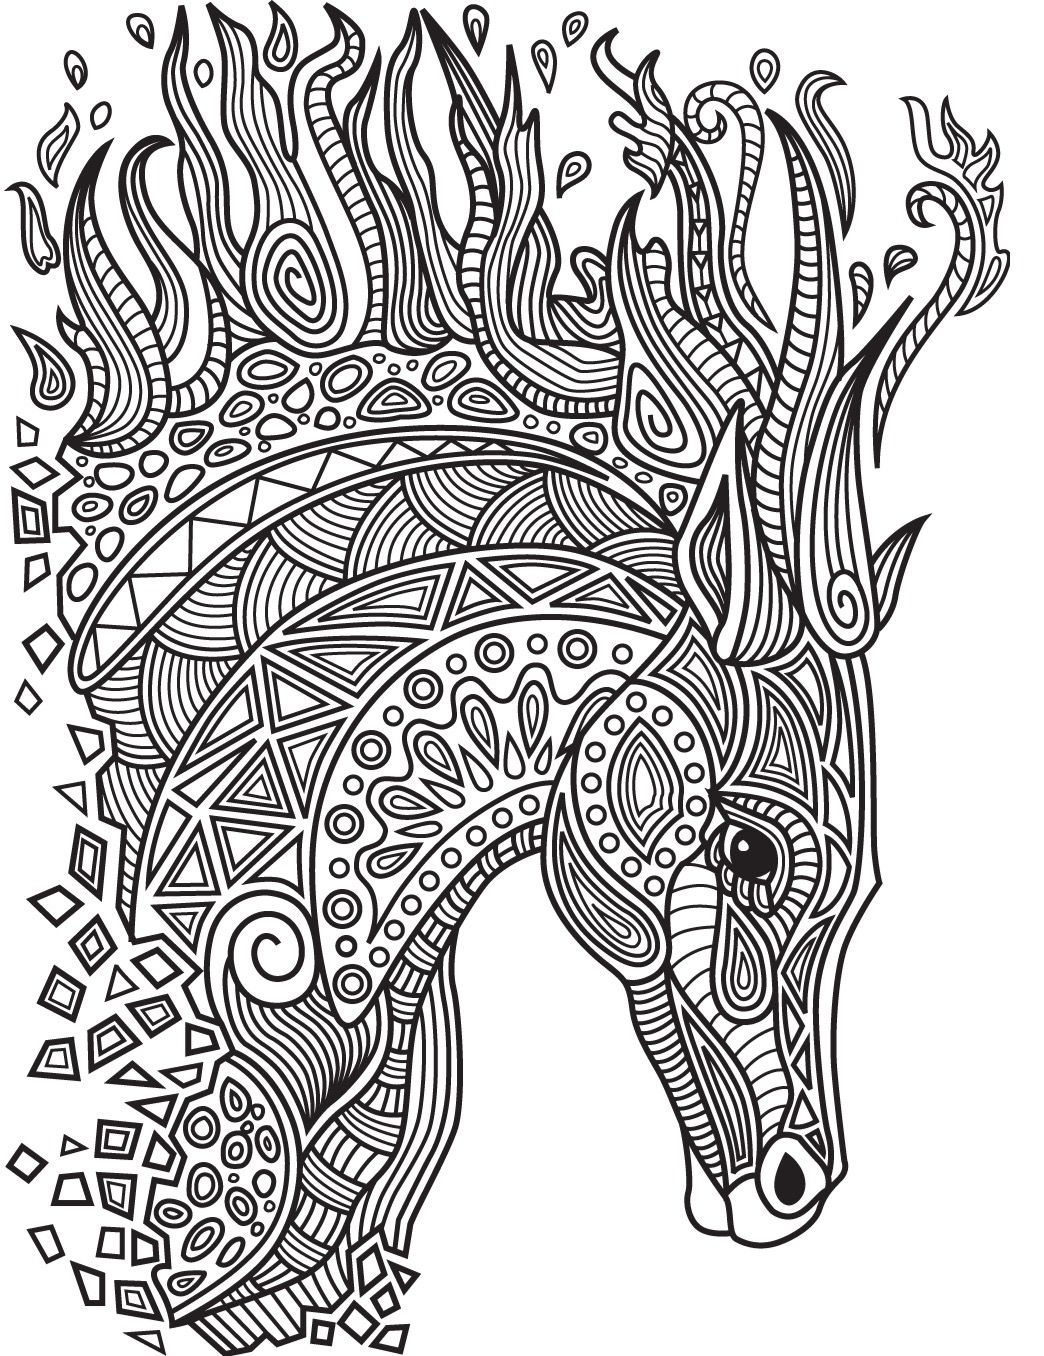 Horses Colorish Coloring Book App For Adults Mandala Relax By Goodsofttech Horse Coloring Pages Coloring Pages Inspirational Animal Coloring Pages